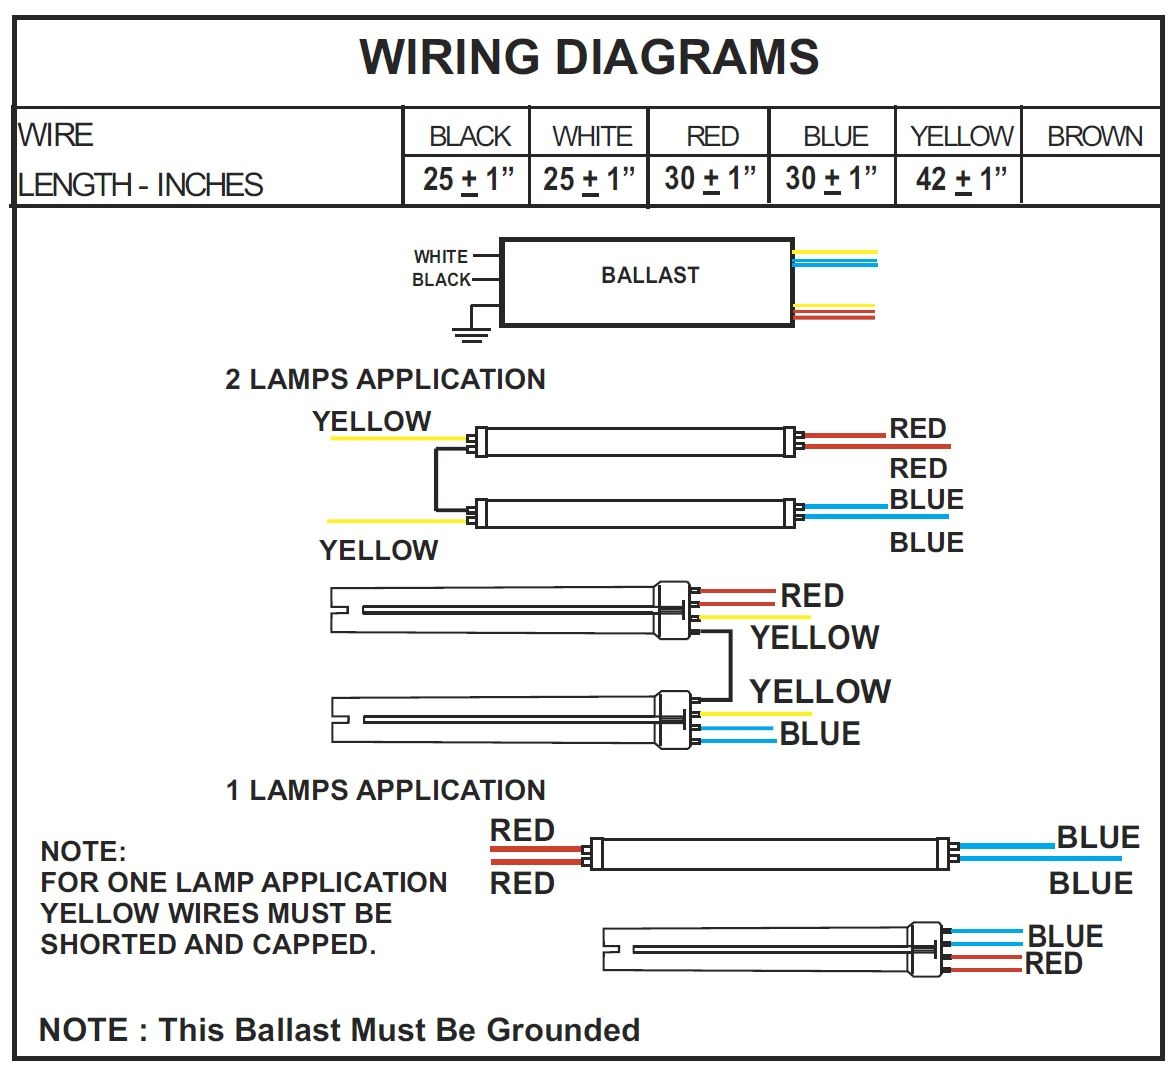 Wiring Diagram For 8 Foot 4 Lamp T8 Ballast - Wiring Diagram Table on